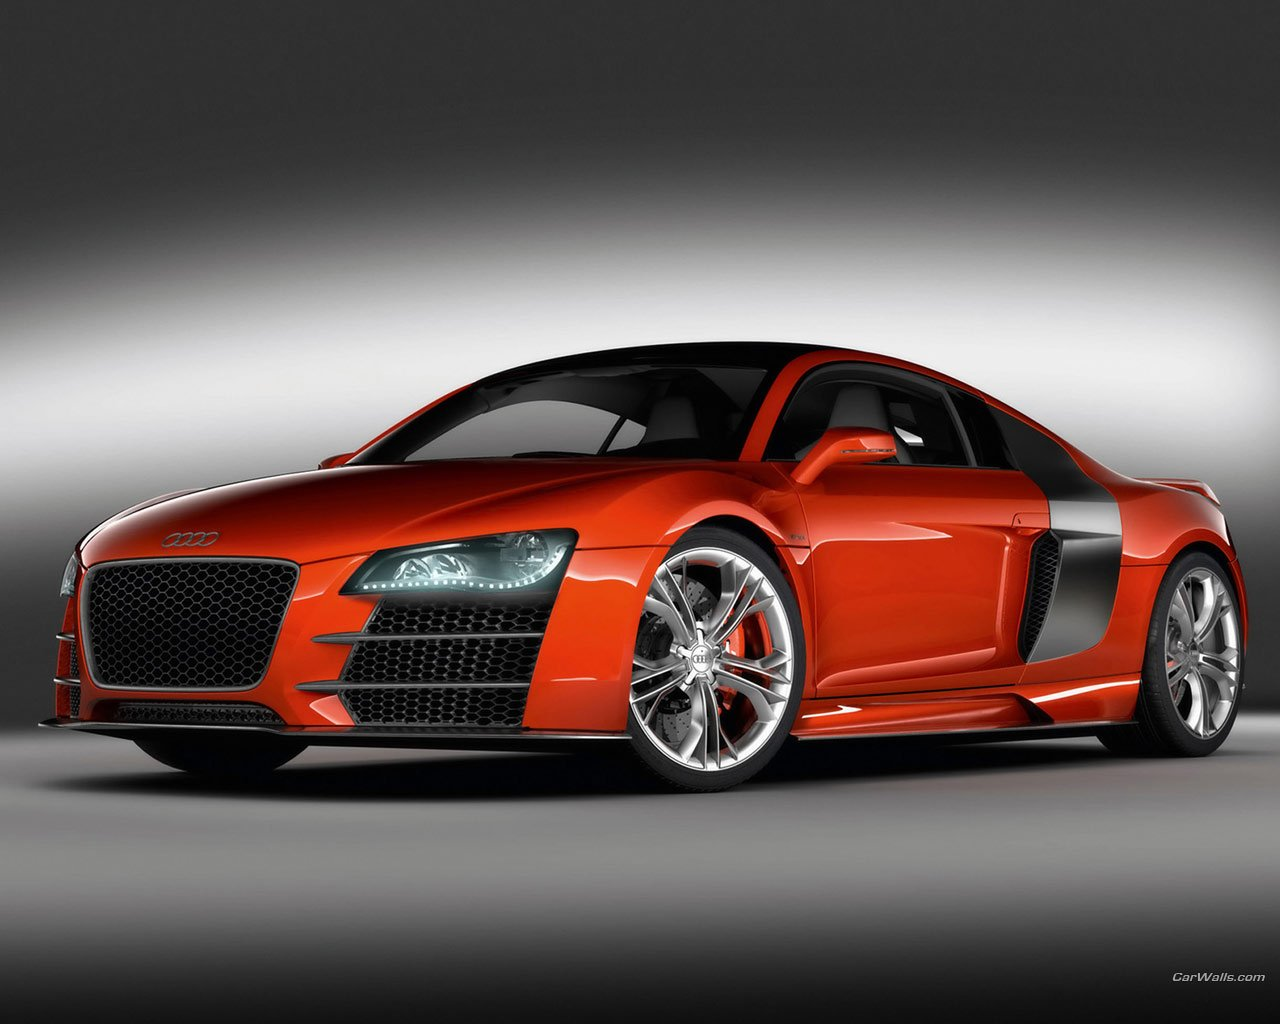 20 Best Sports Cars Wallpapers Download For   Technosamrat 1280x1024